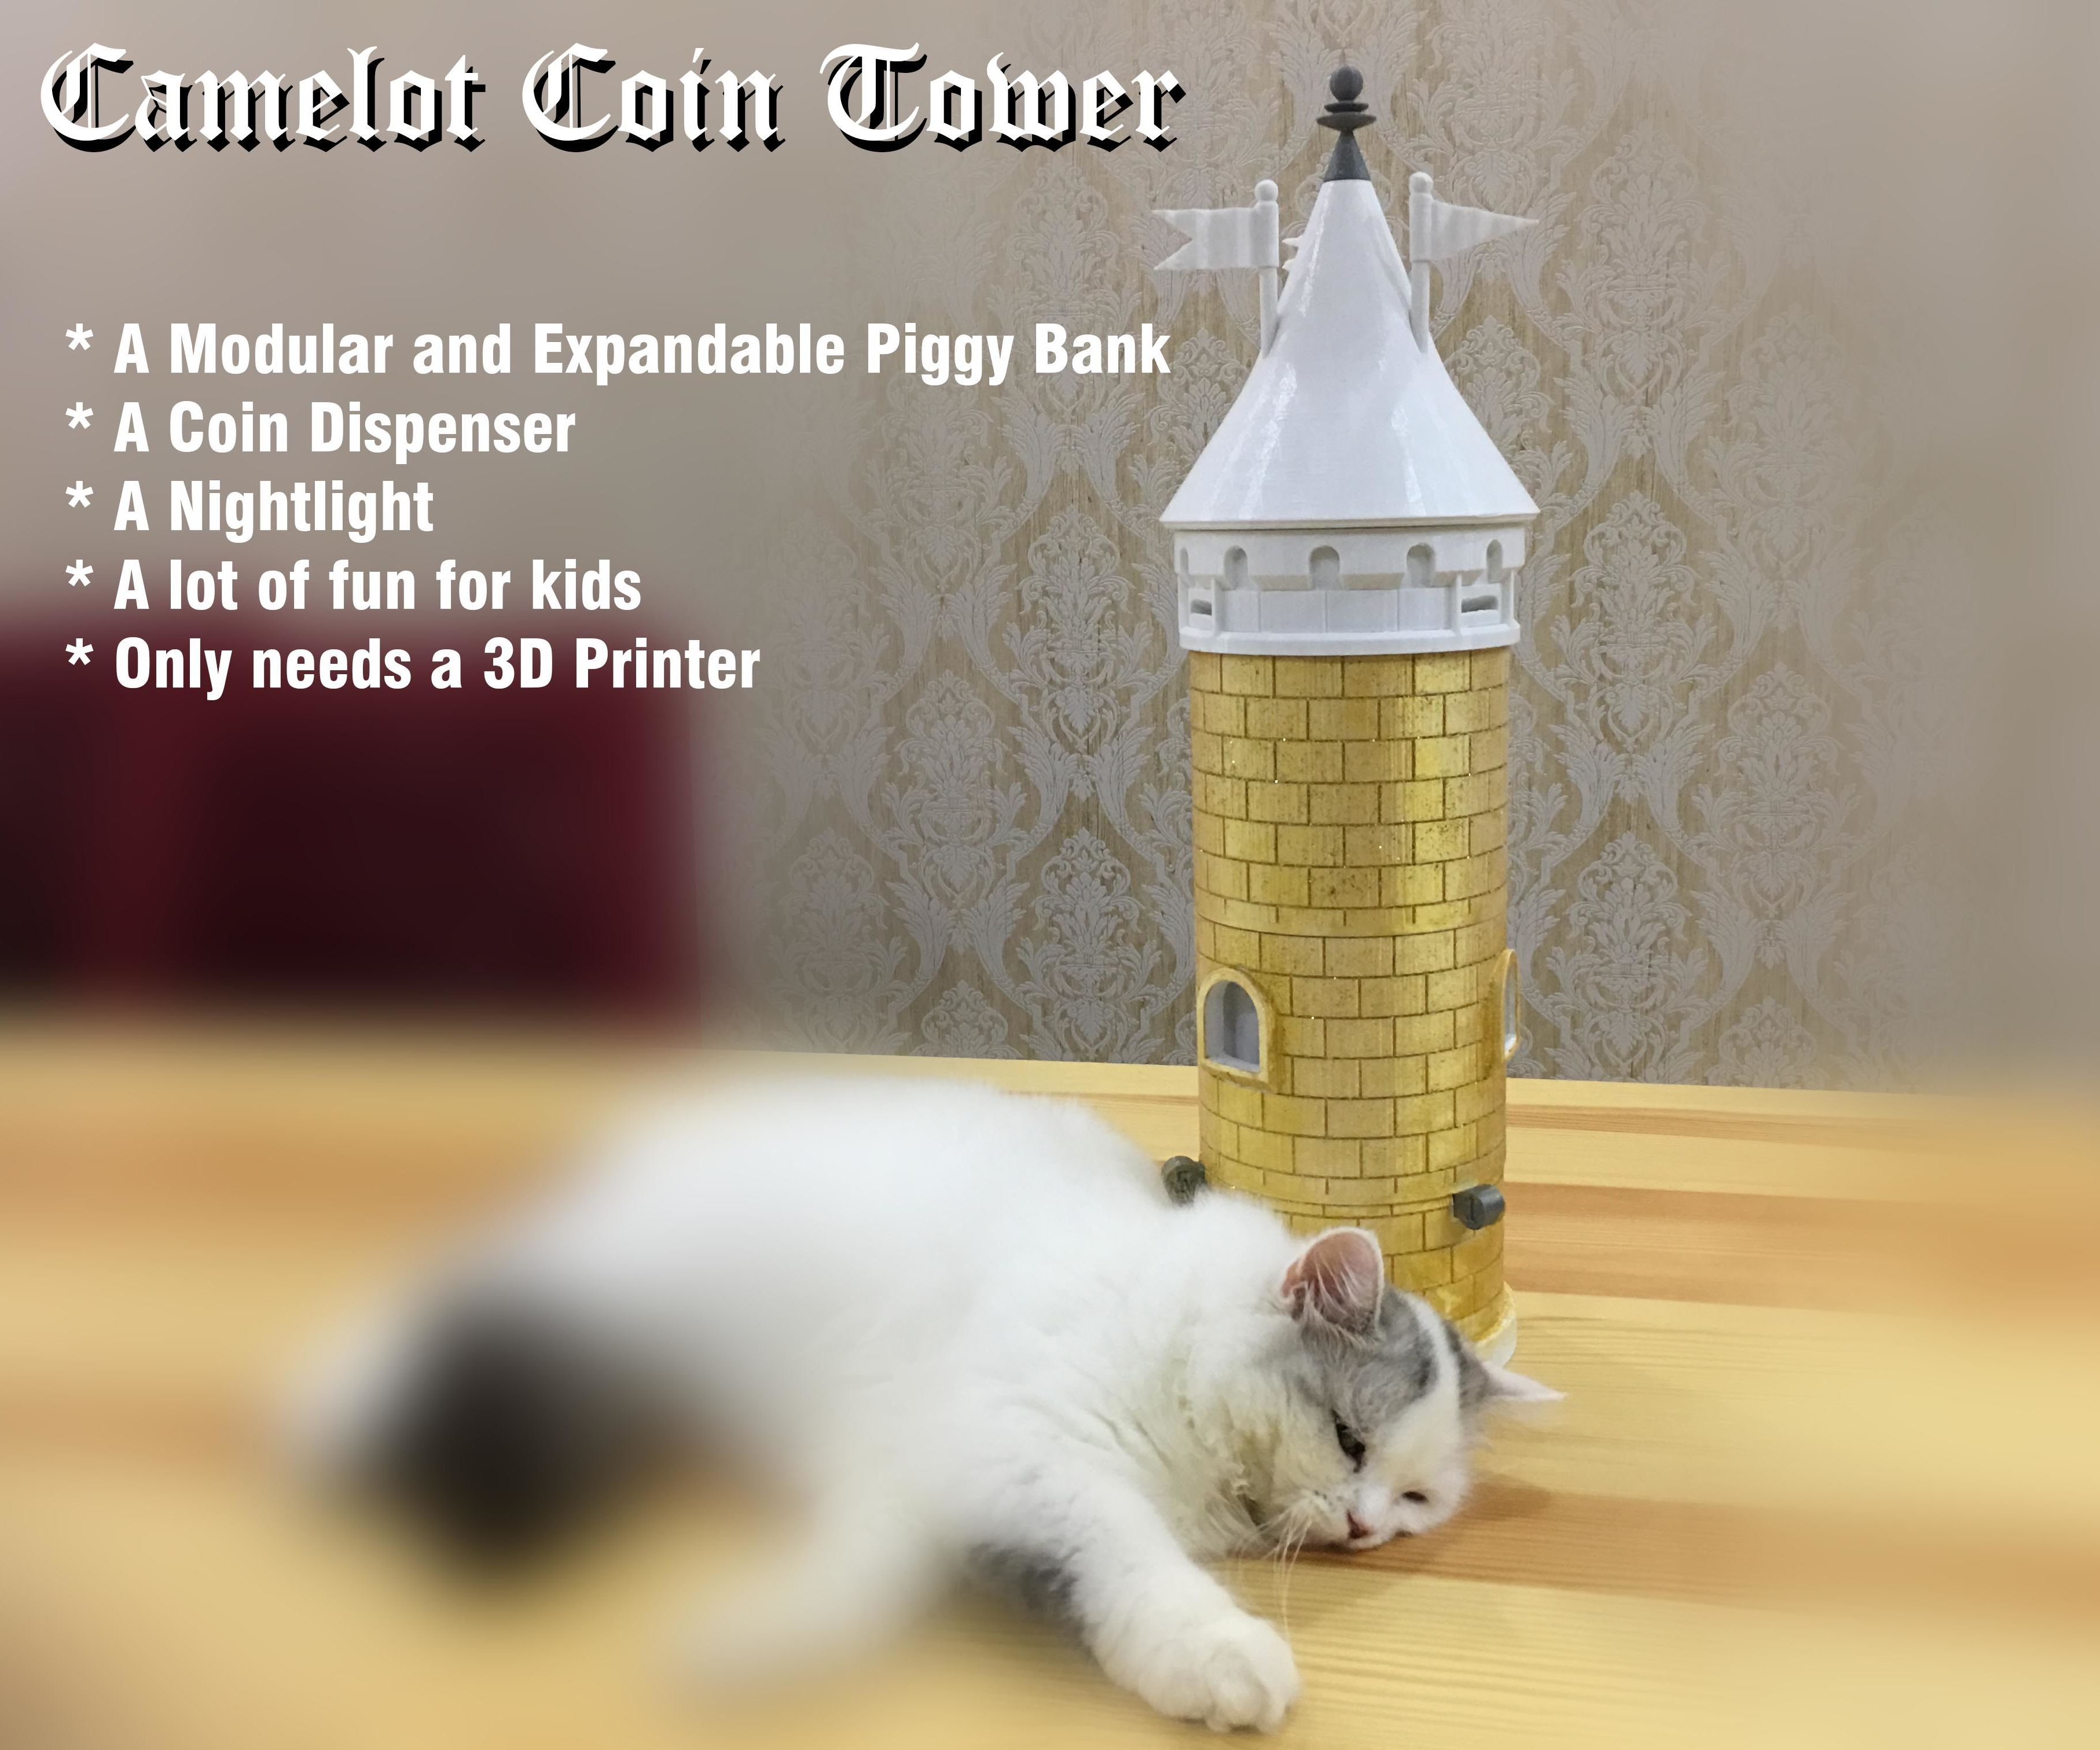 Camelot Coin Tower | 3d printing technology and 3D Printing